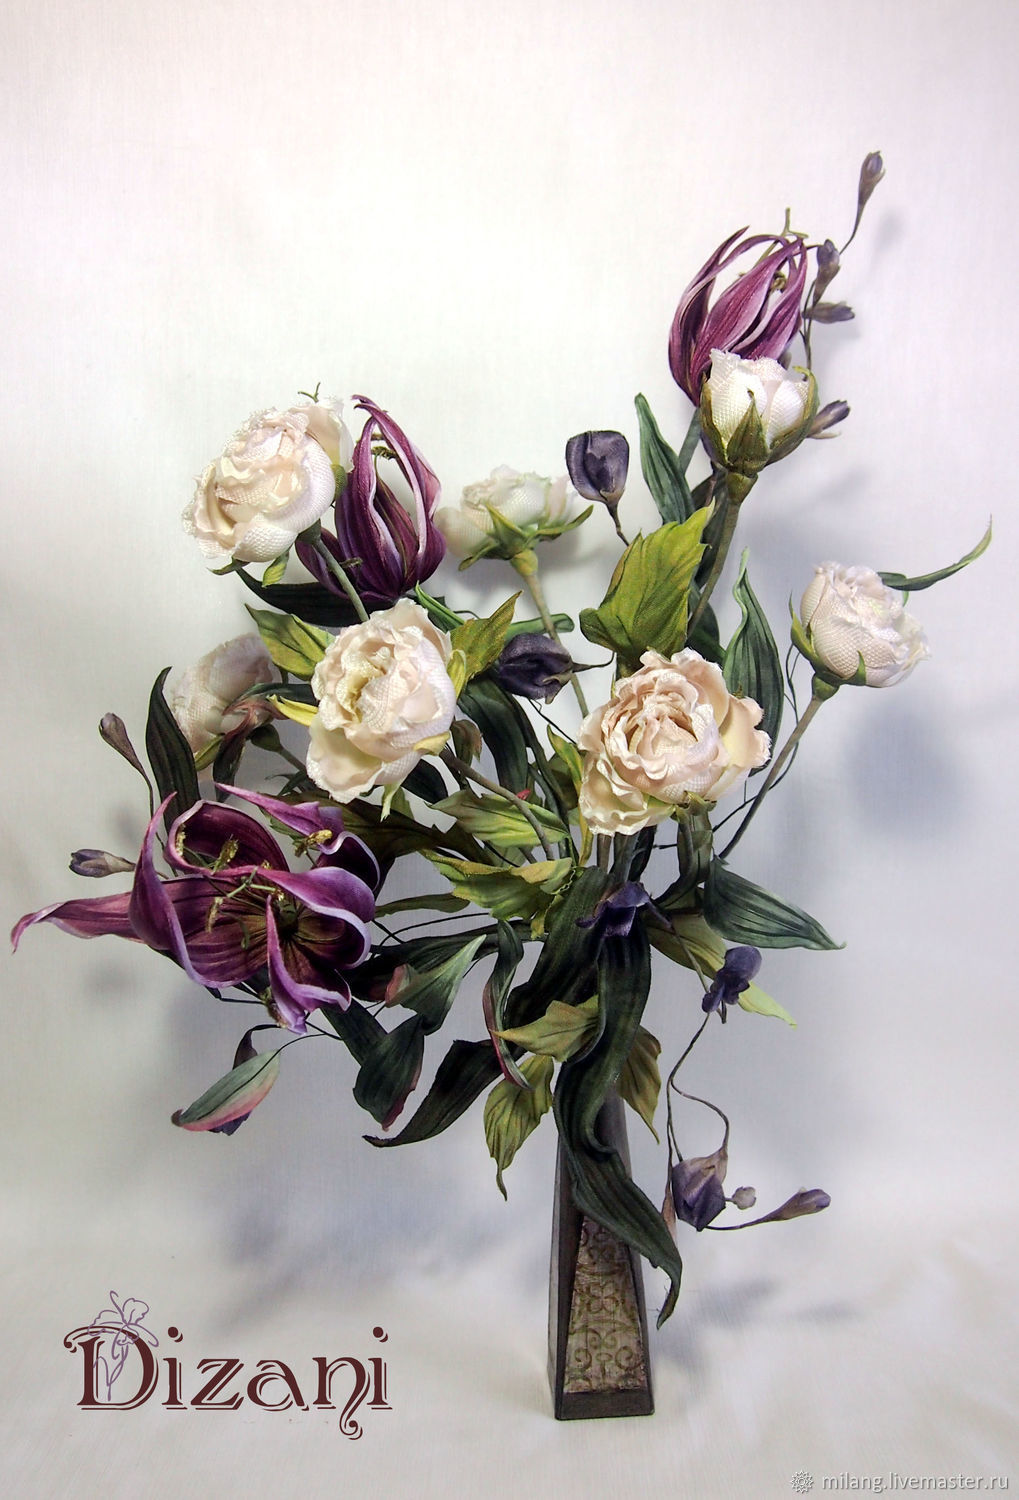 Bouquet Florens Silk Flowers Cloth Flowers Shop Online On